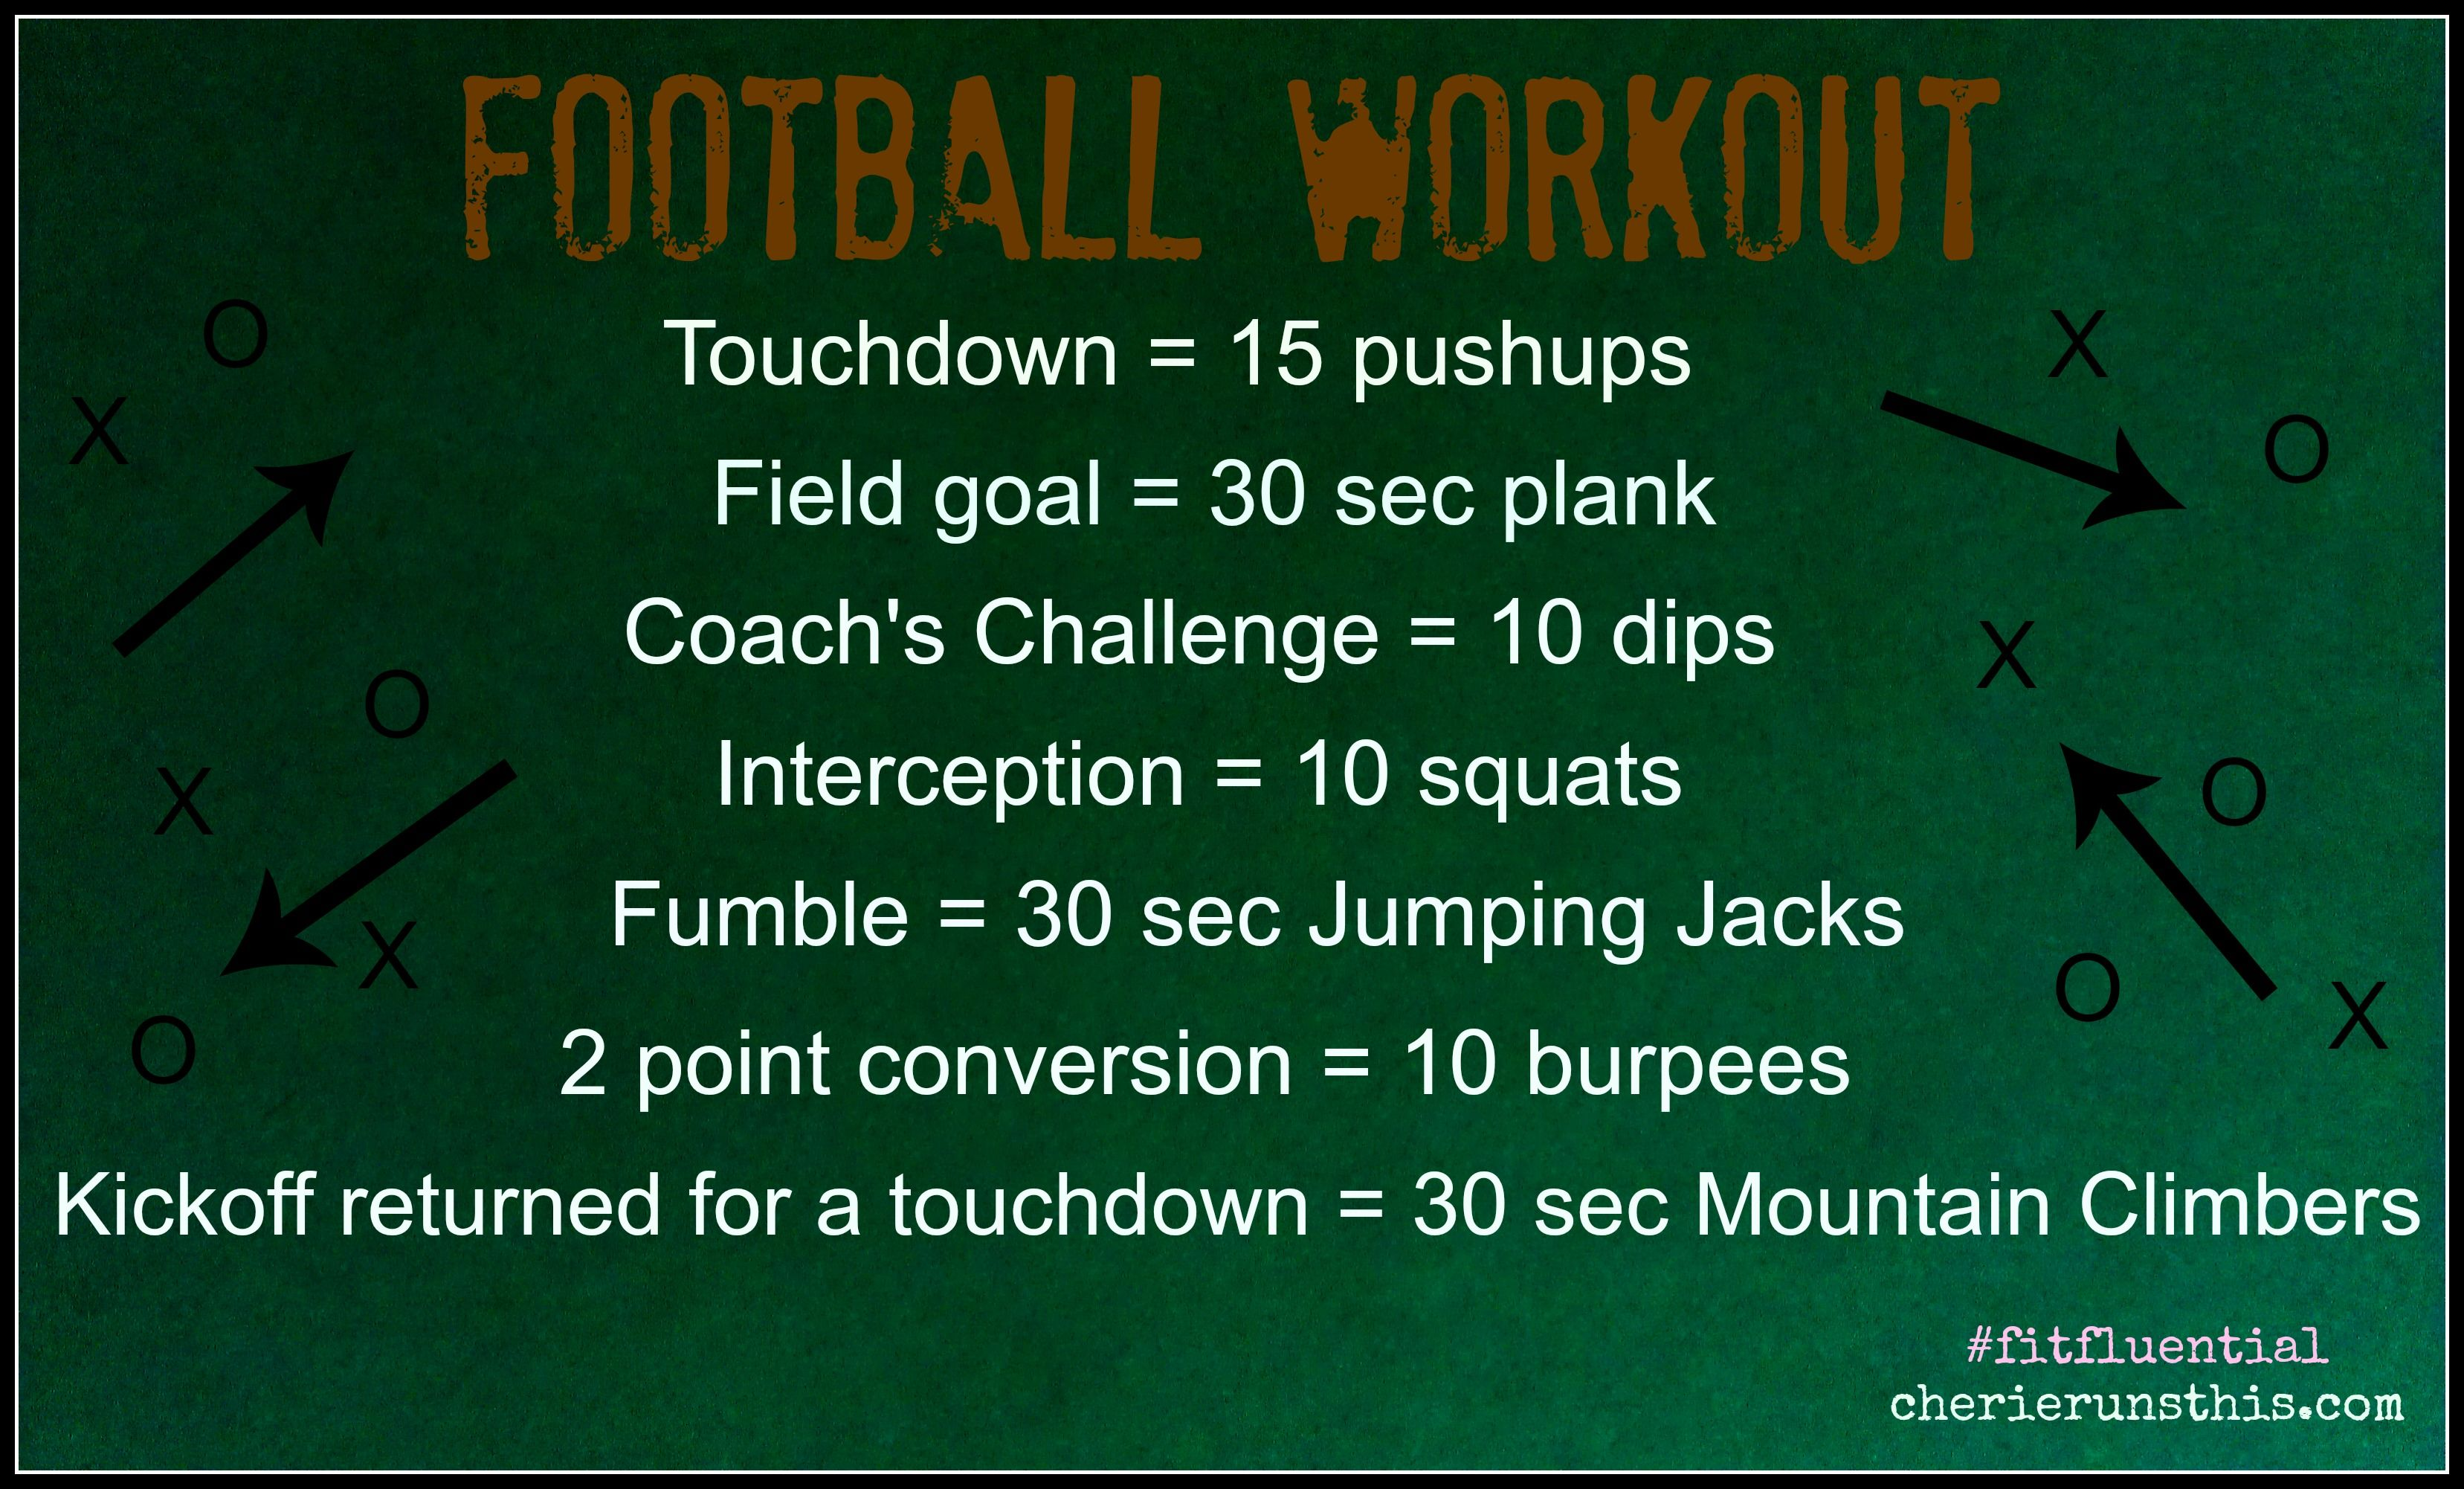 Football Workout time!